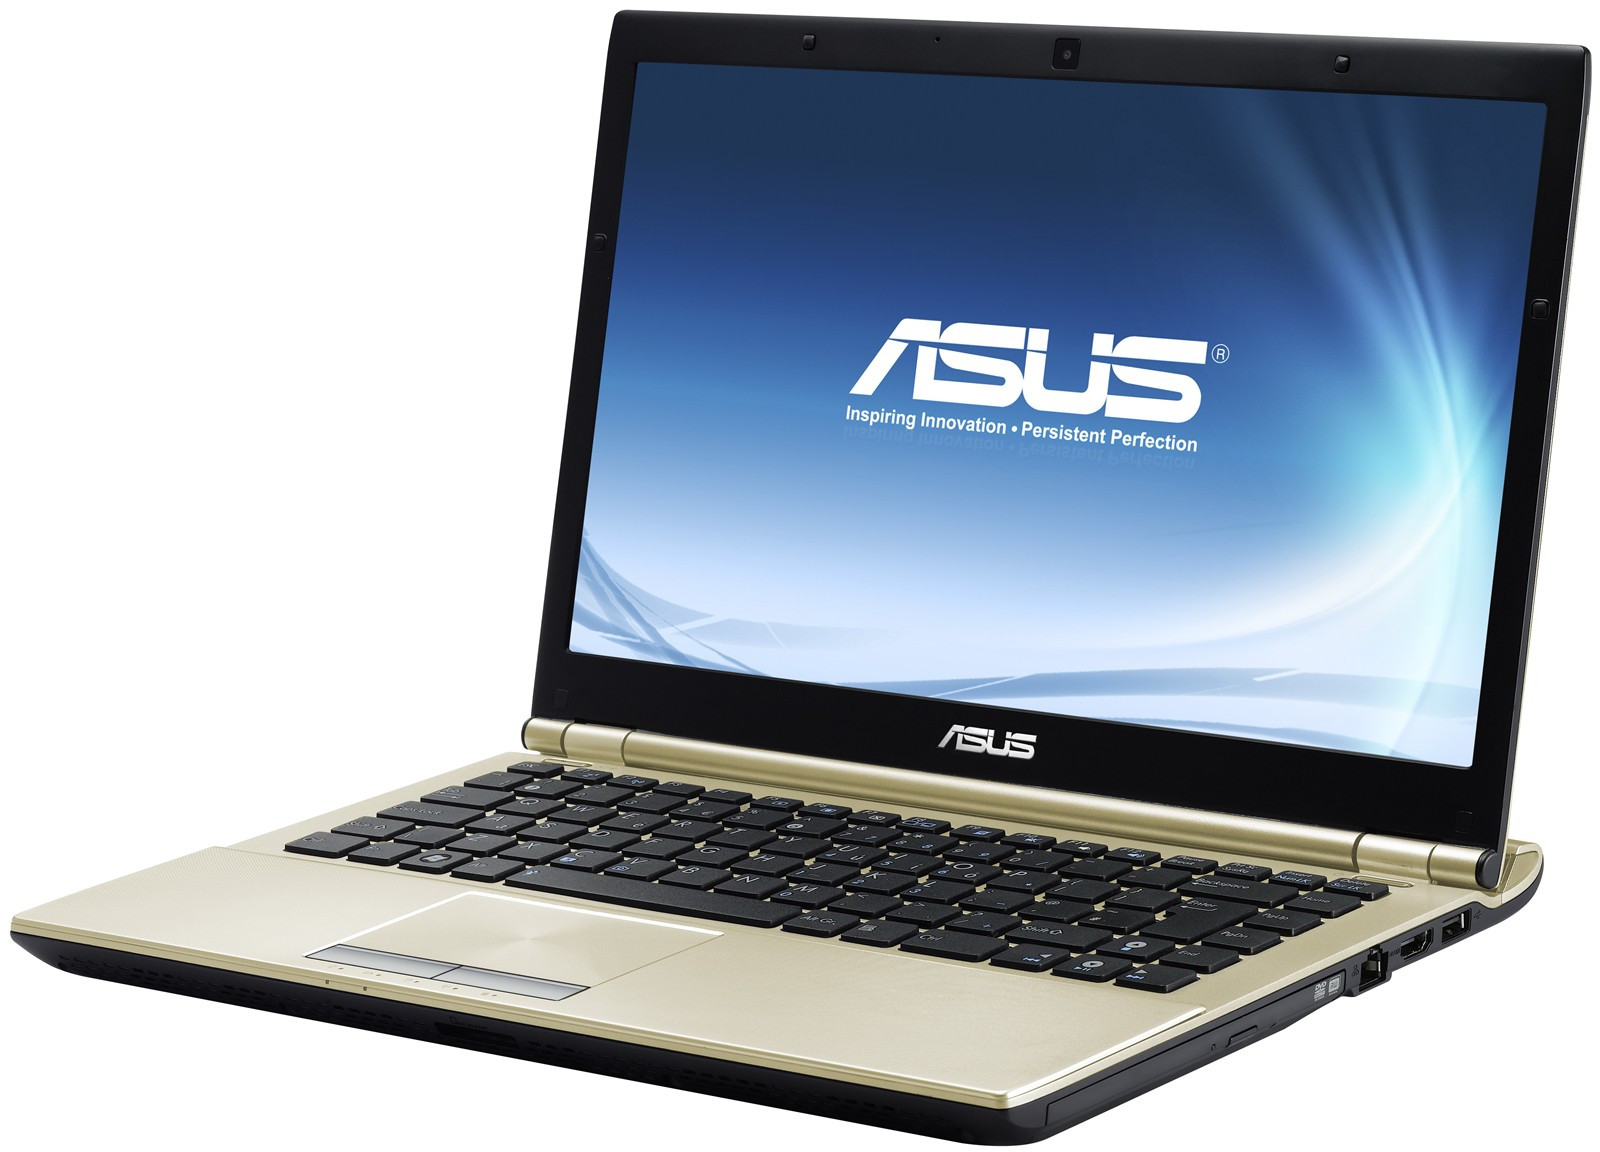 Asus U46sv Dh51 14 Inch Notebook Now Available For Pre